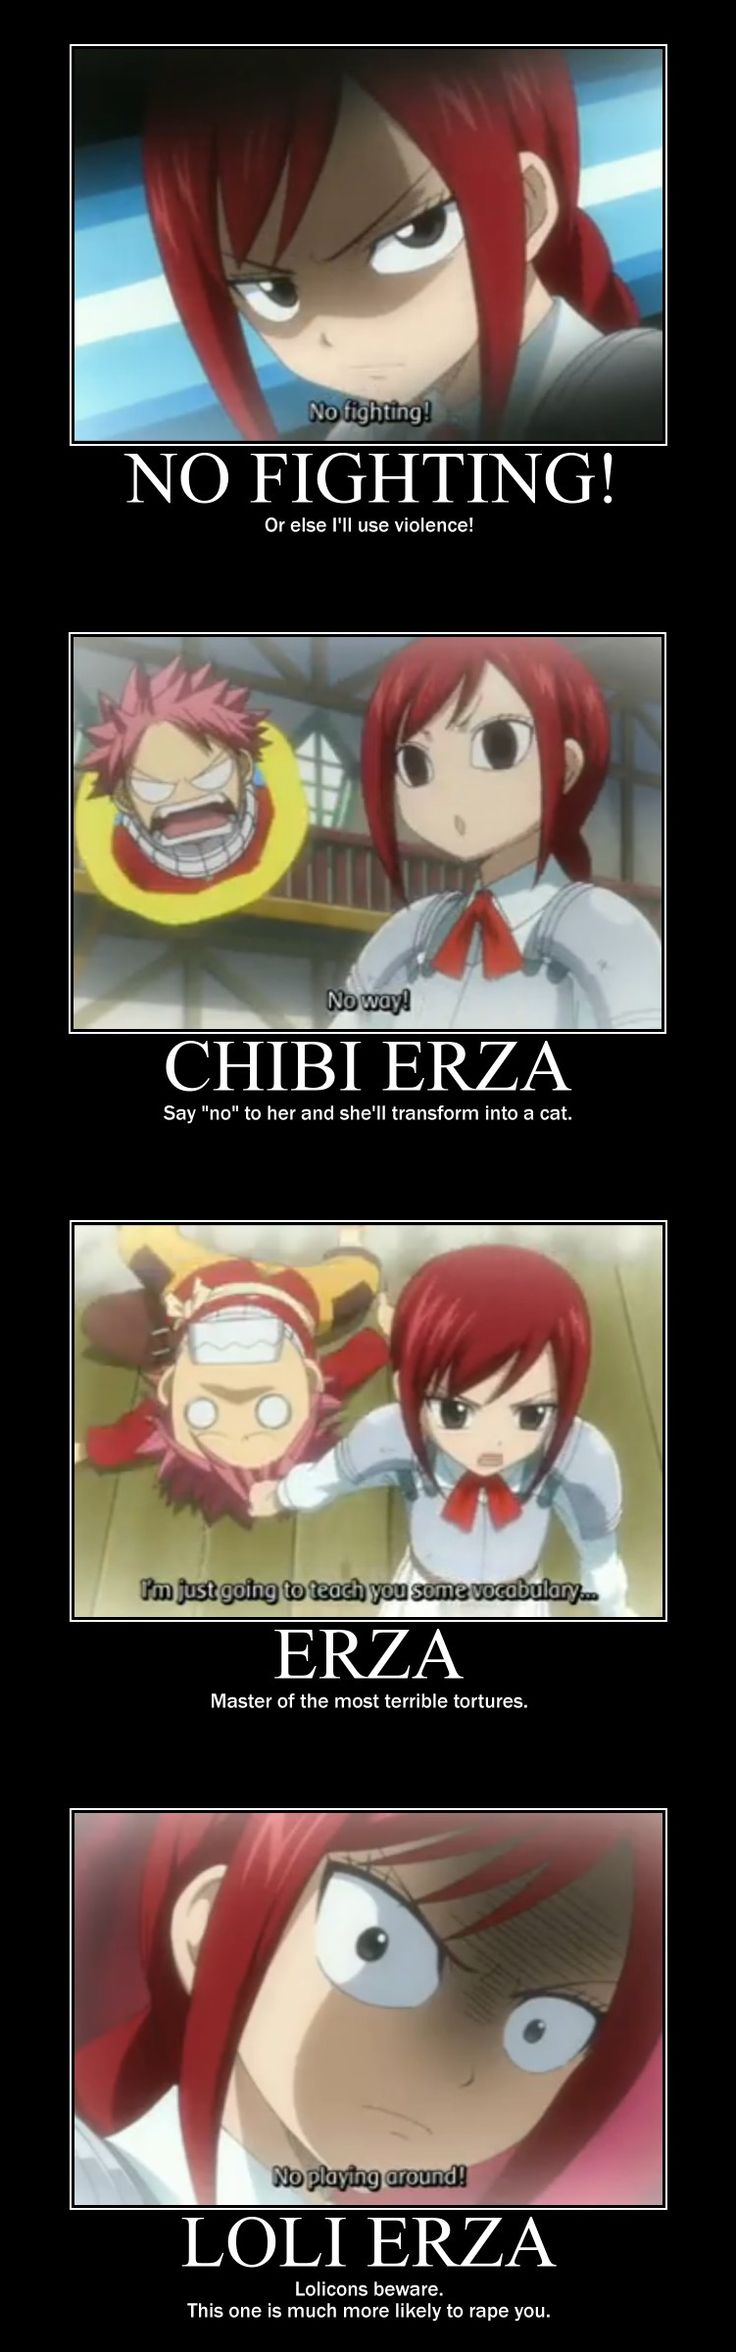 Fairy Tail Erza memes - Google Search